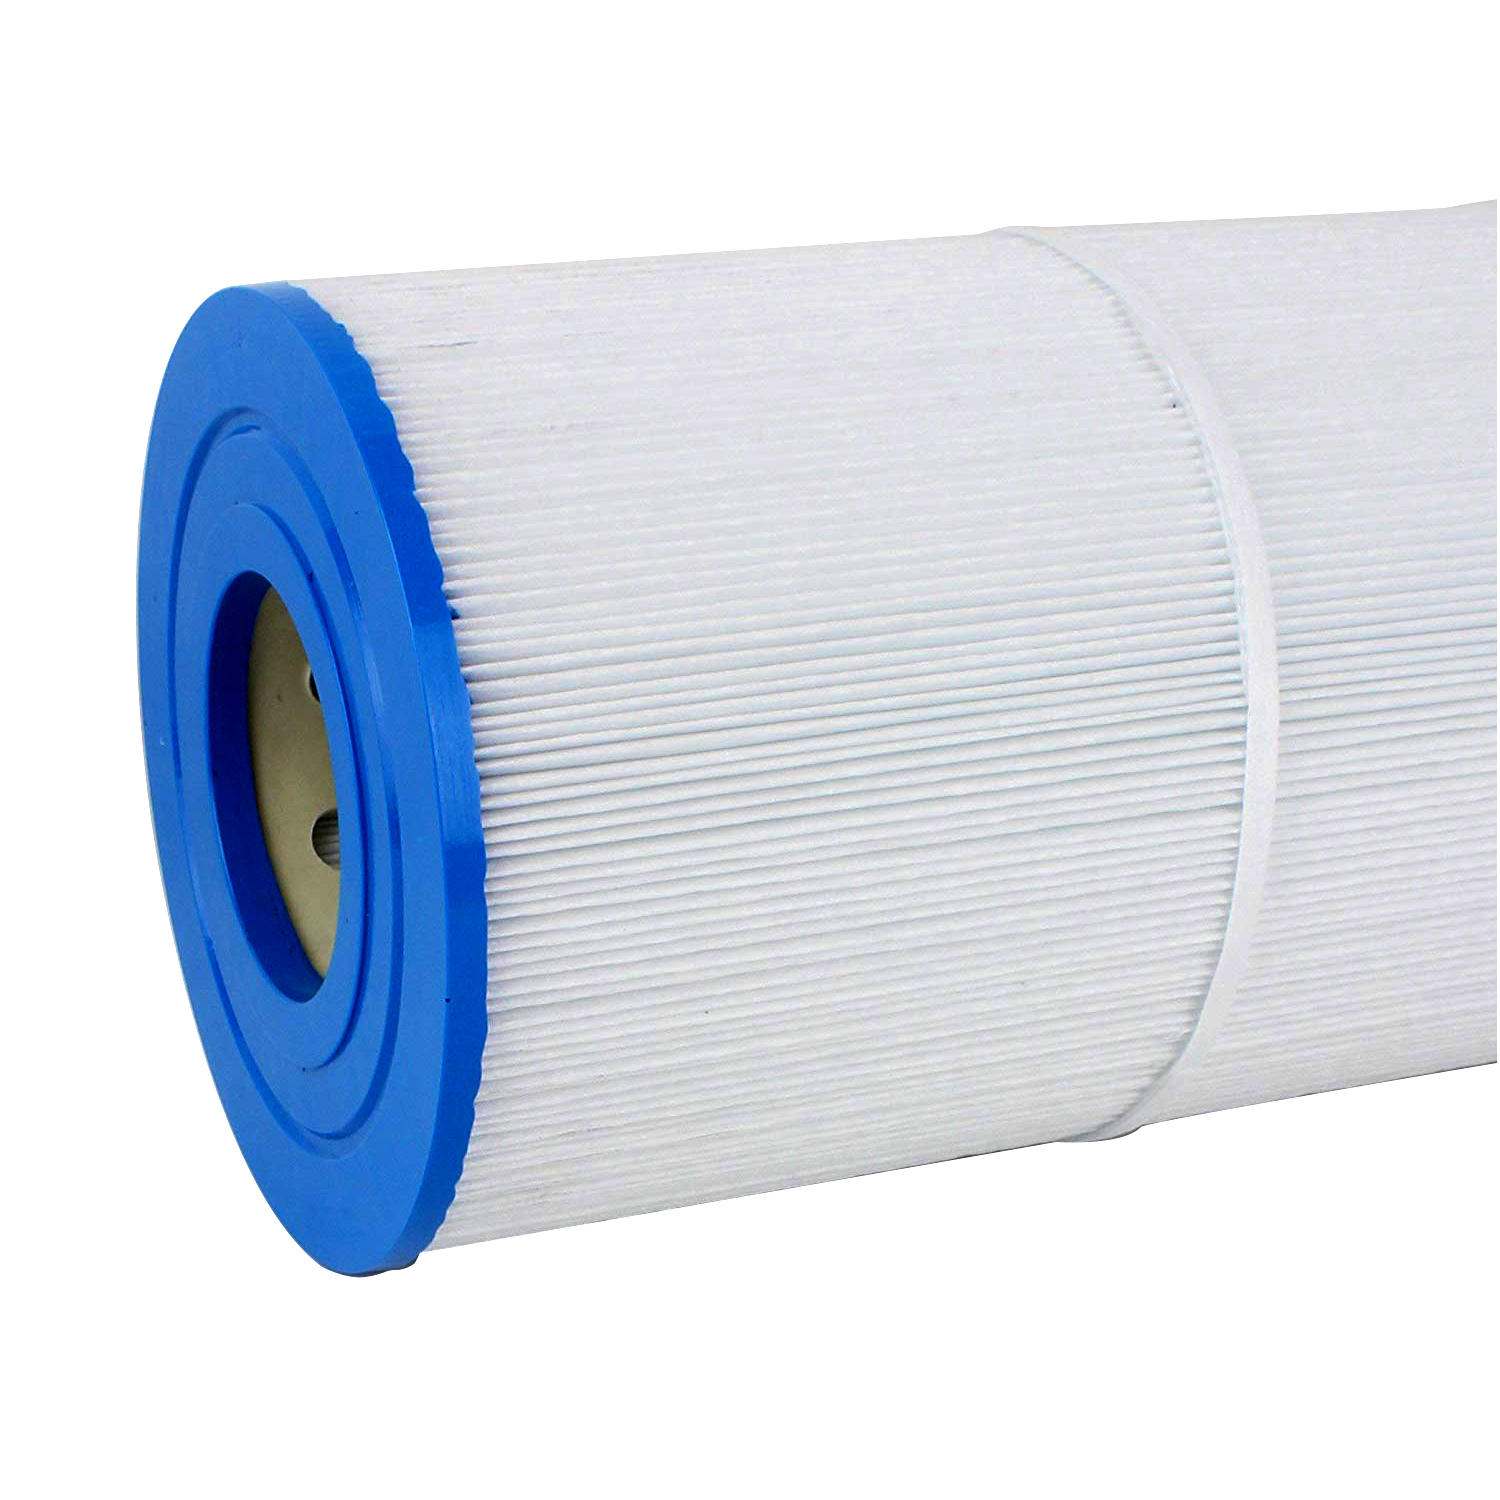 Special Design for Spa Shower Water Filter Cartridge -